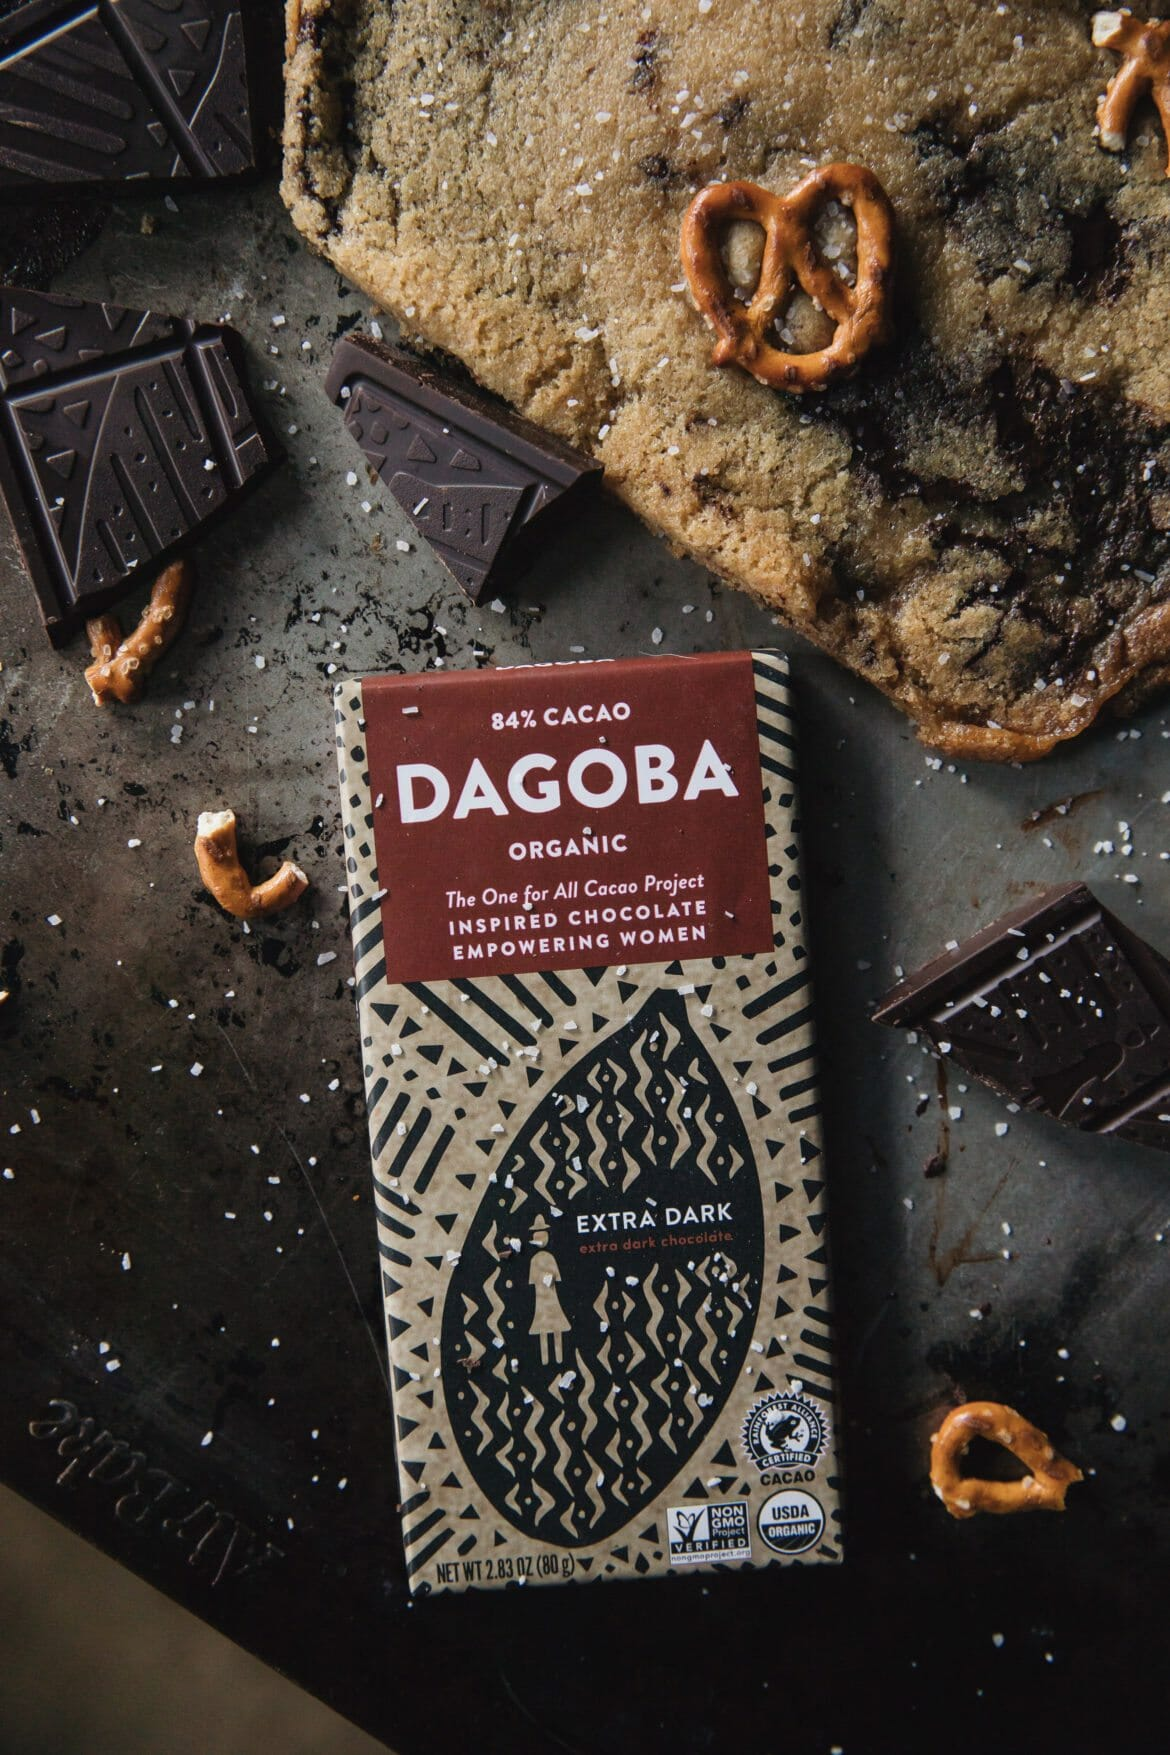 dagoba dark chocolate bar